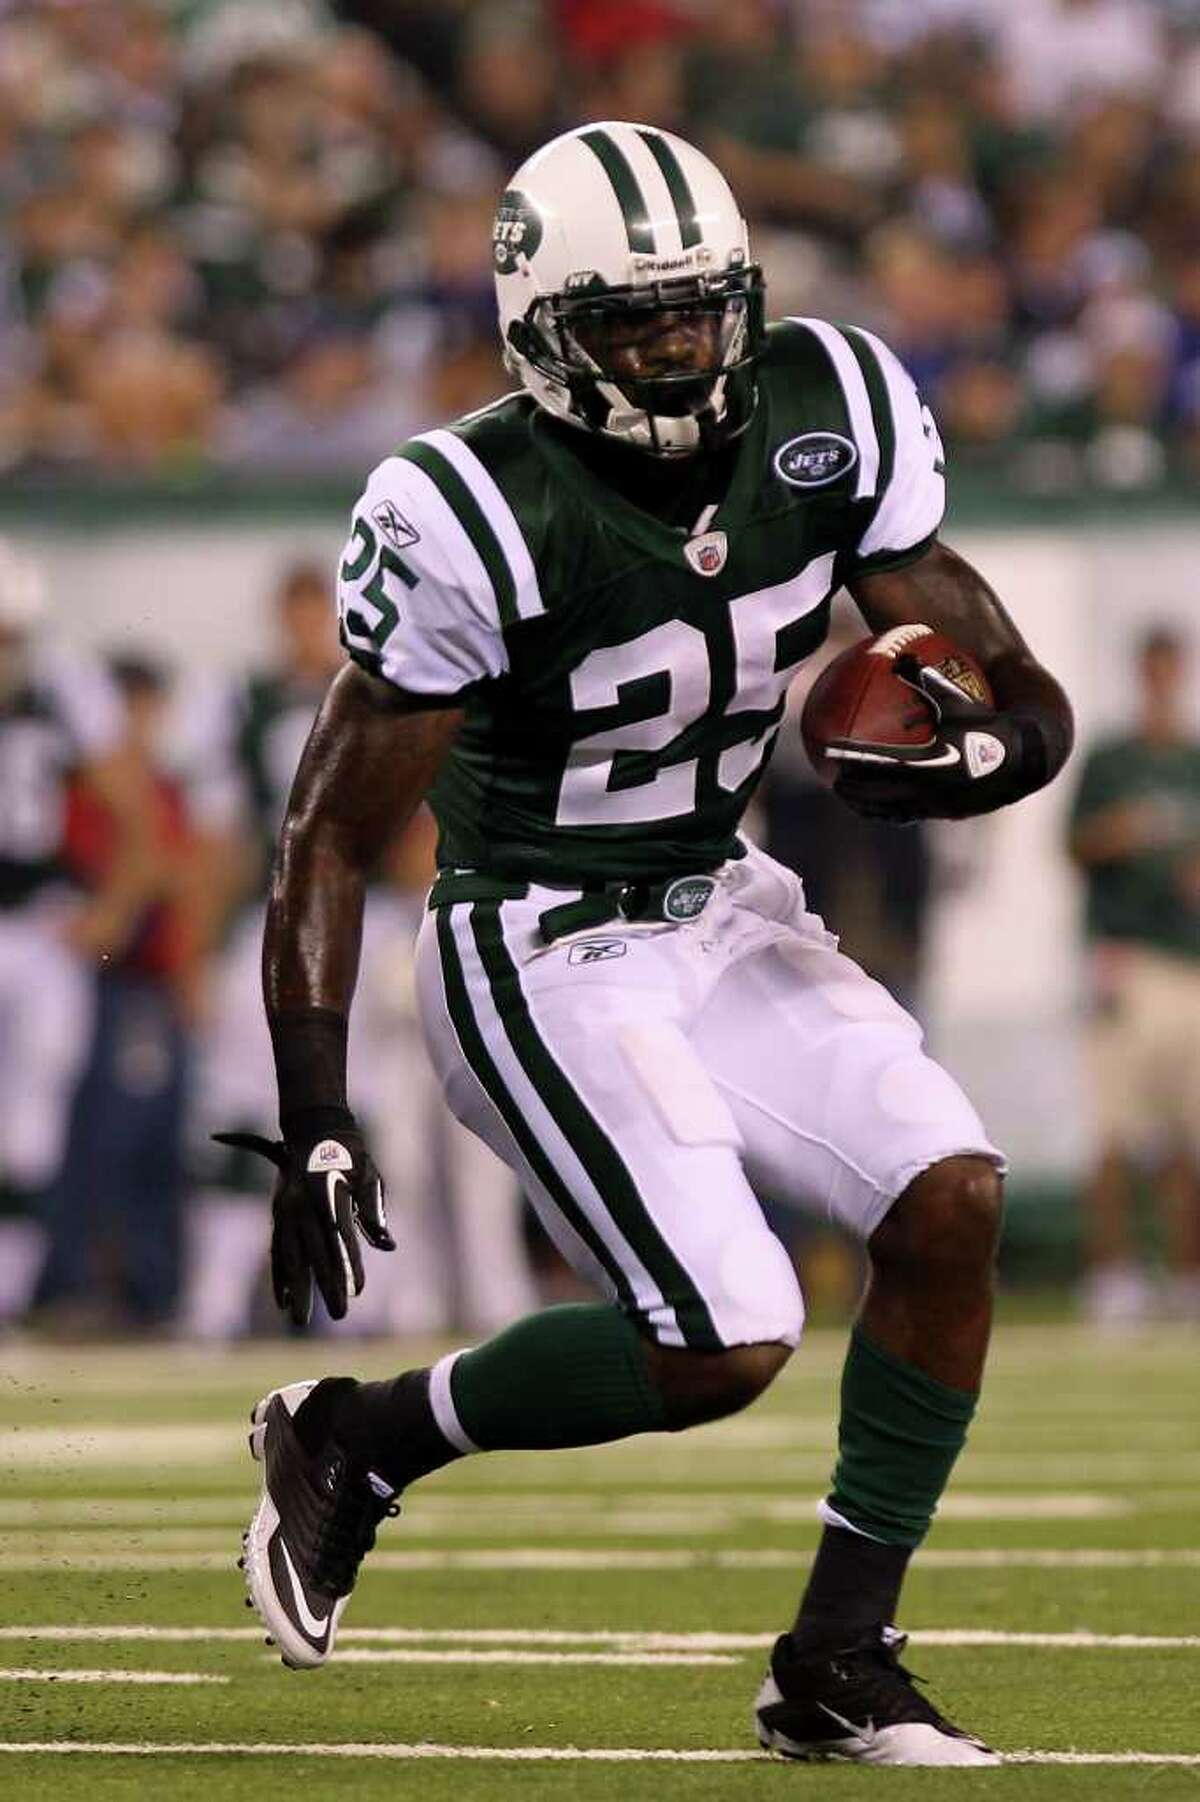 EAST RUTHERFORD, NJ - AUGUST 16: Joe McKnight #25 of the New York Jets rushes against the New York Giants during their game at New Meadowlands Stadium on August 16, 2010 in East Rutherford, New Jersey. (Photo by Nick Laham/Getty Images) *** Local Caption *** Joe McKnight